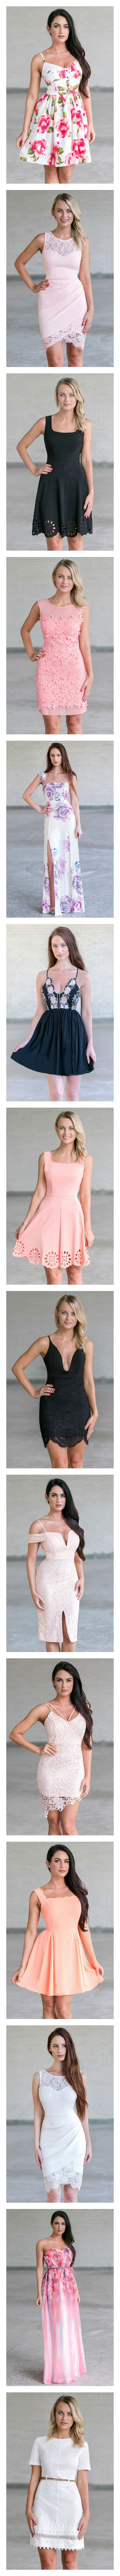 Cute dresses at Lilyboutique.com! FREE Shipping over $75!